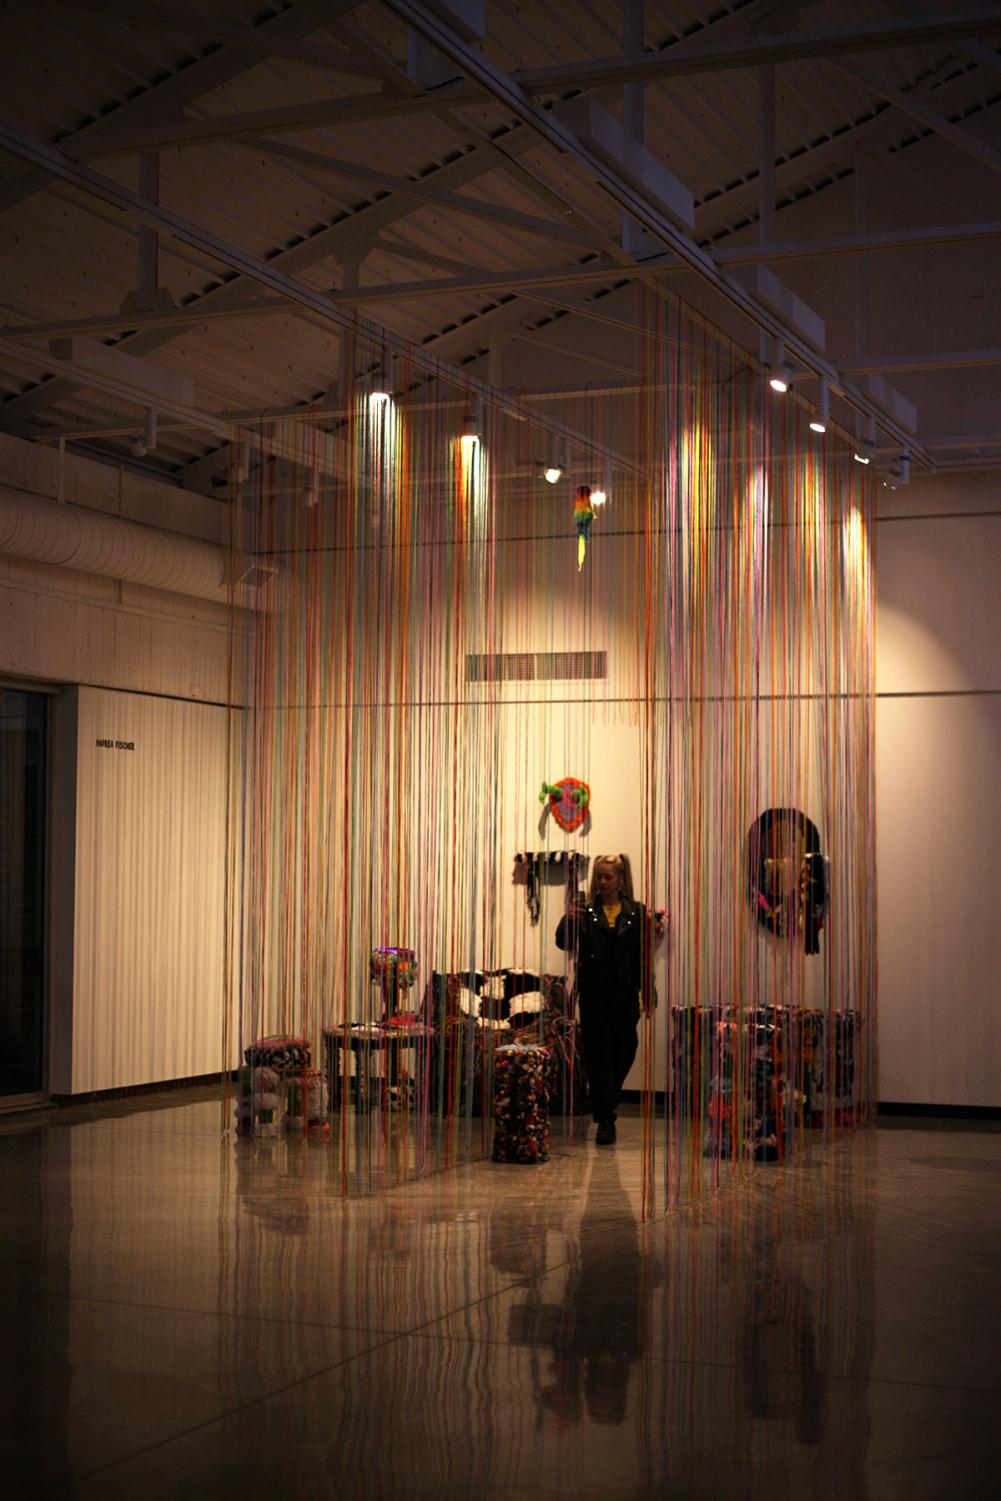 Andrea+Fischer%2C+a+fourth-year+photography+student%2C+stands+under+her+little+yarn+world+of+presented+work%2C+titled%2C+%E2%80%9Cfur-niture.%E2%80%9D